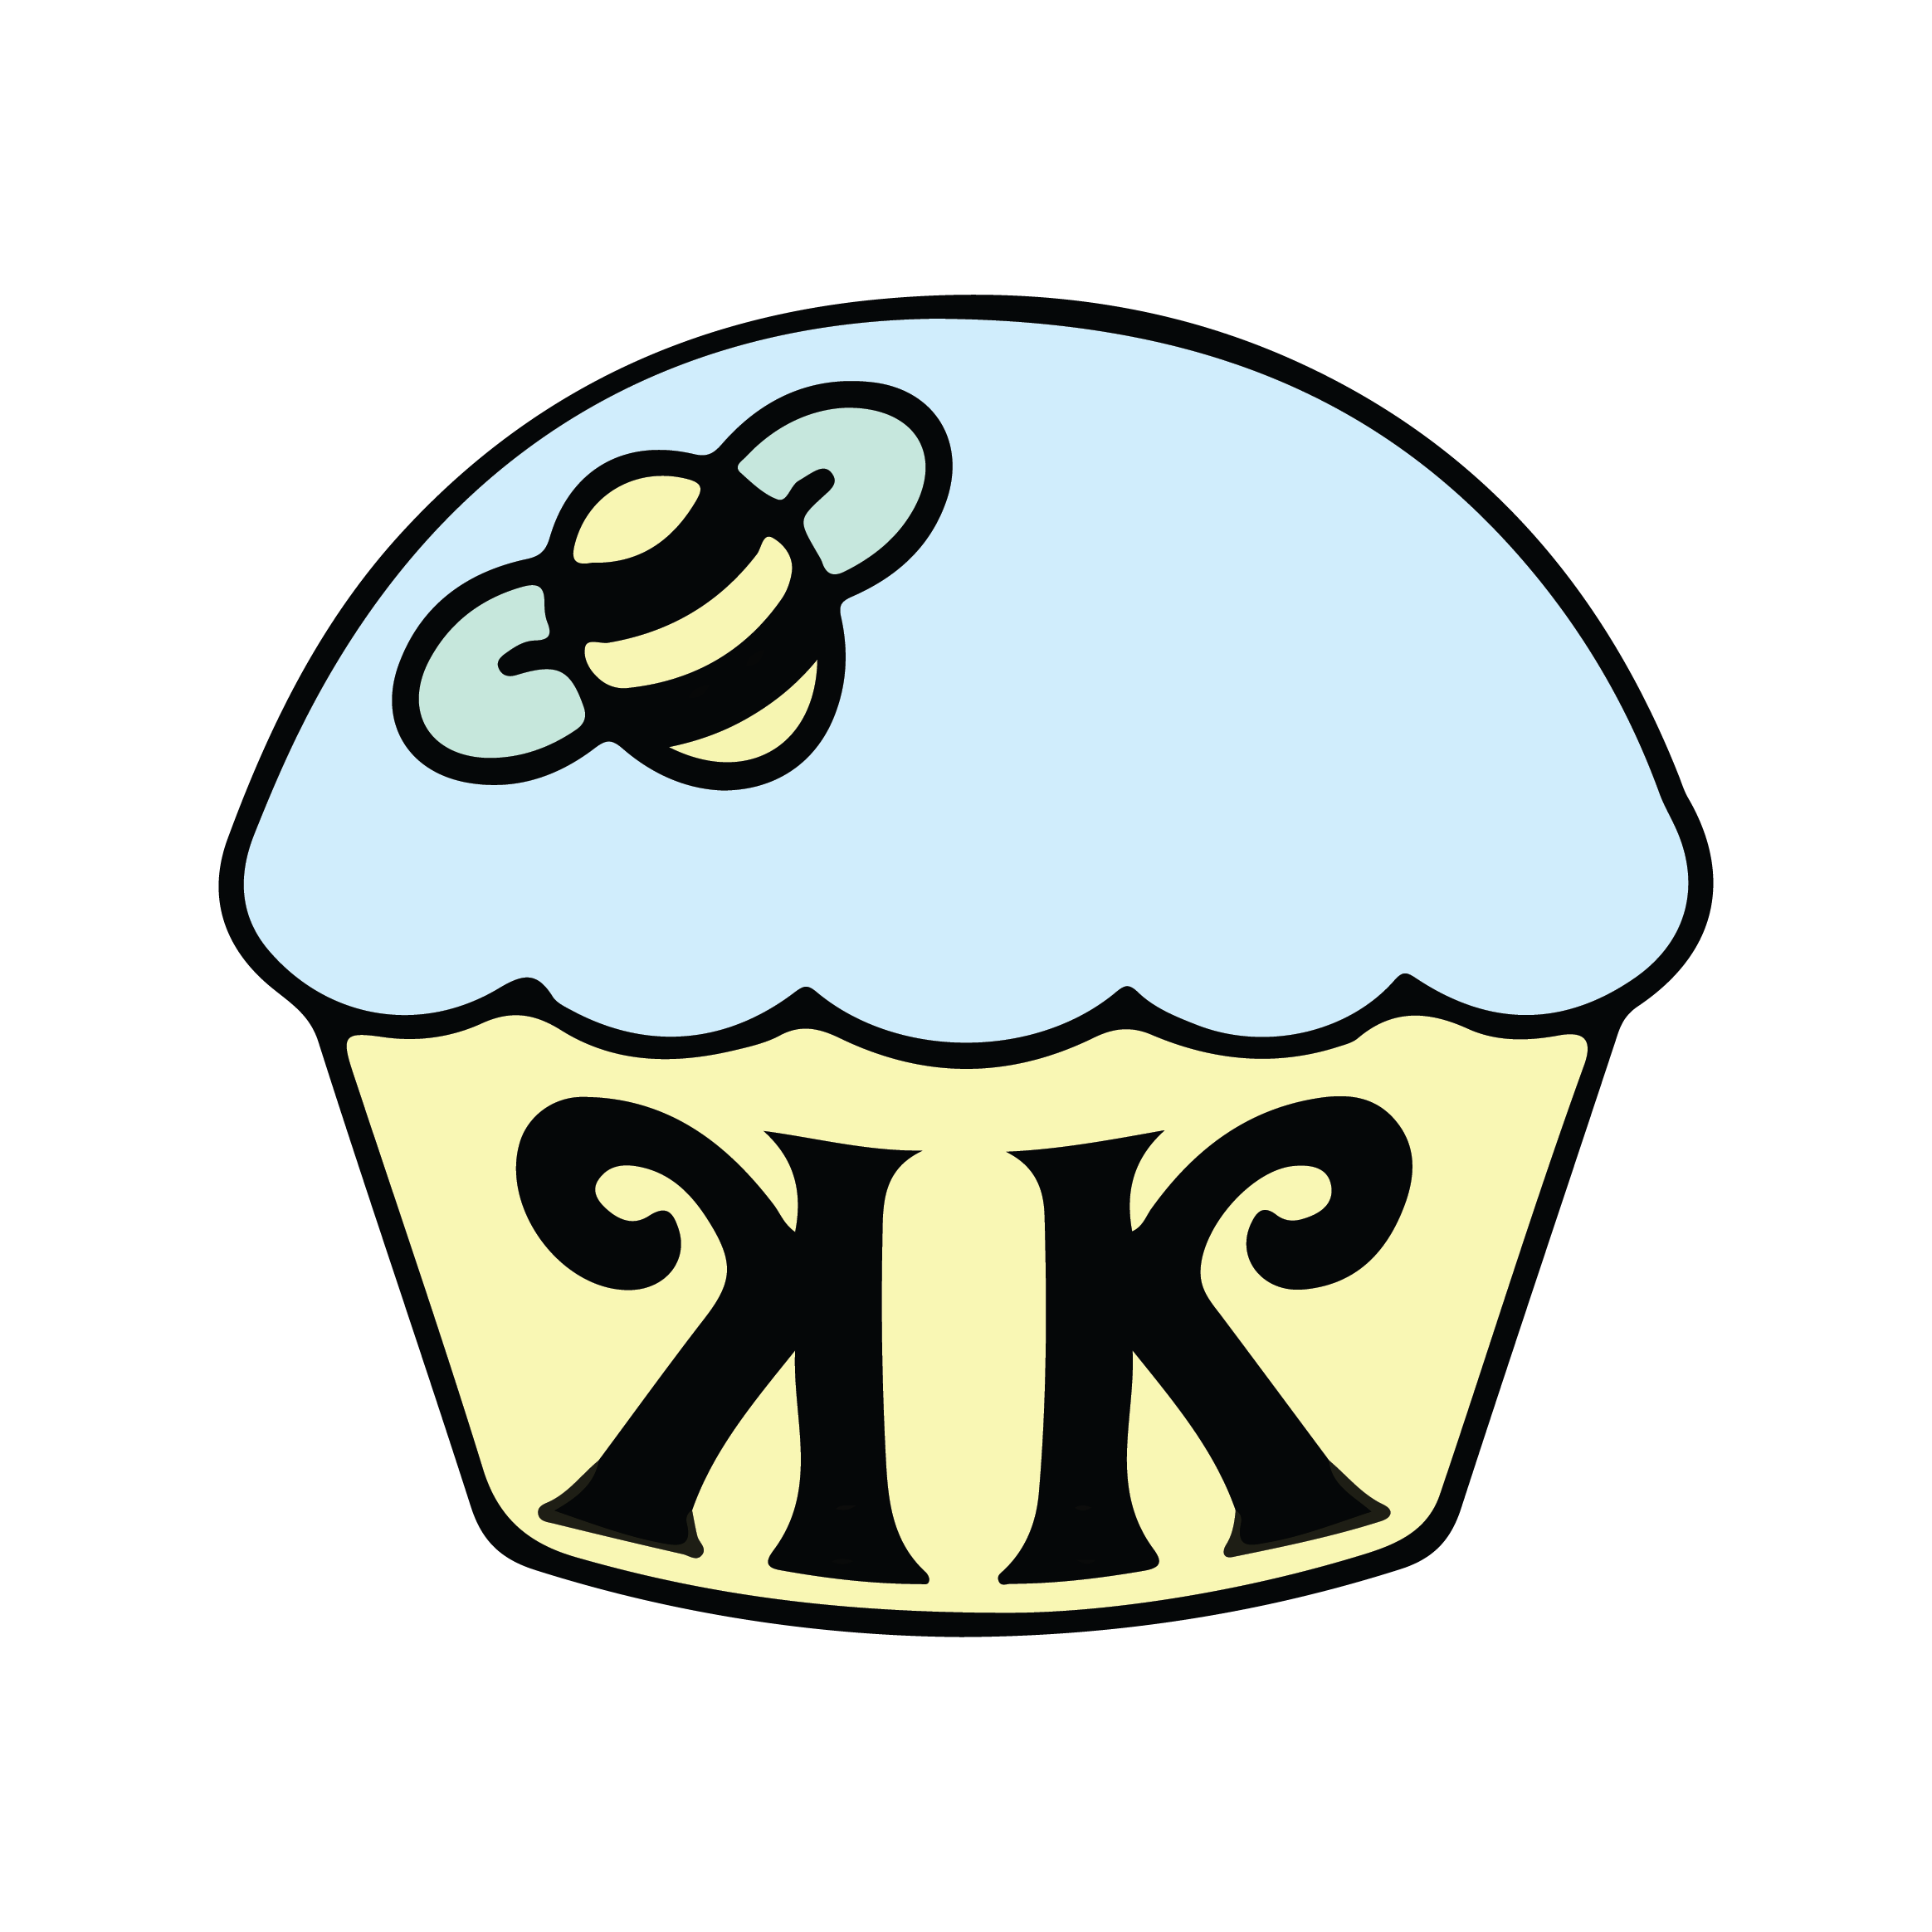 FEATURING BAKED GOODS BY  Kizbee's Kitchen